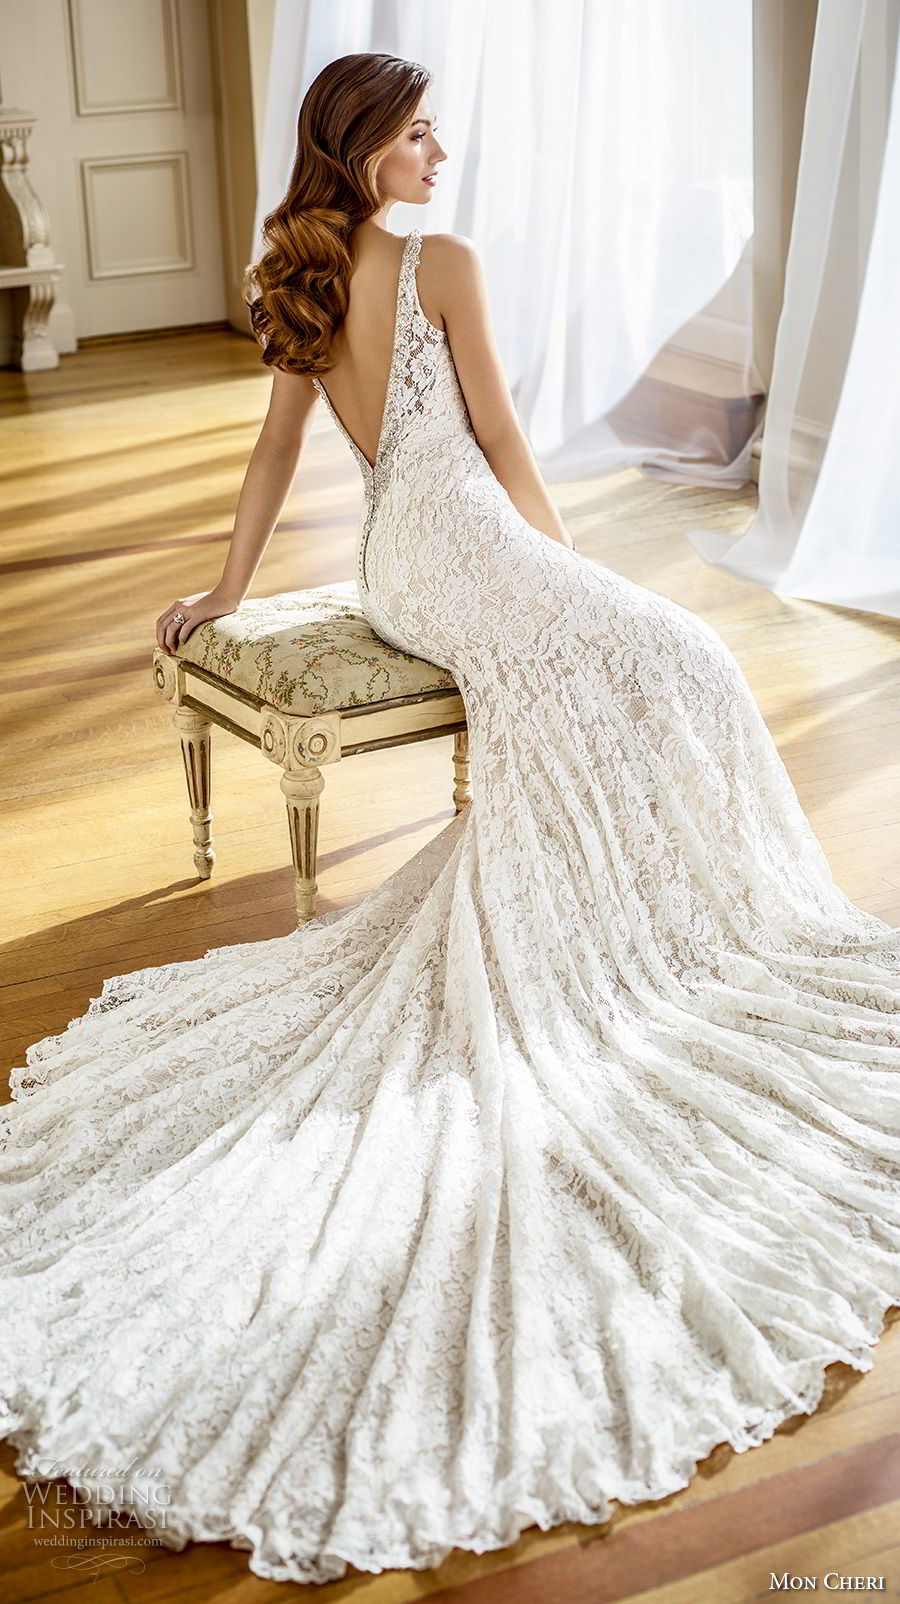 mon cheri fall 2017 bridal sleeveless v neck full embellishment elegant fit and flare mermaid wedding dress open v back chapel train (205) bv